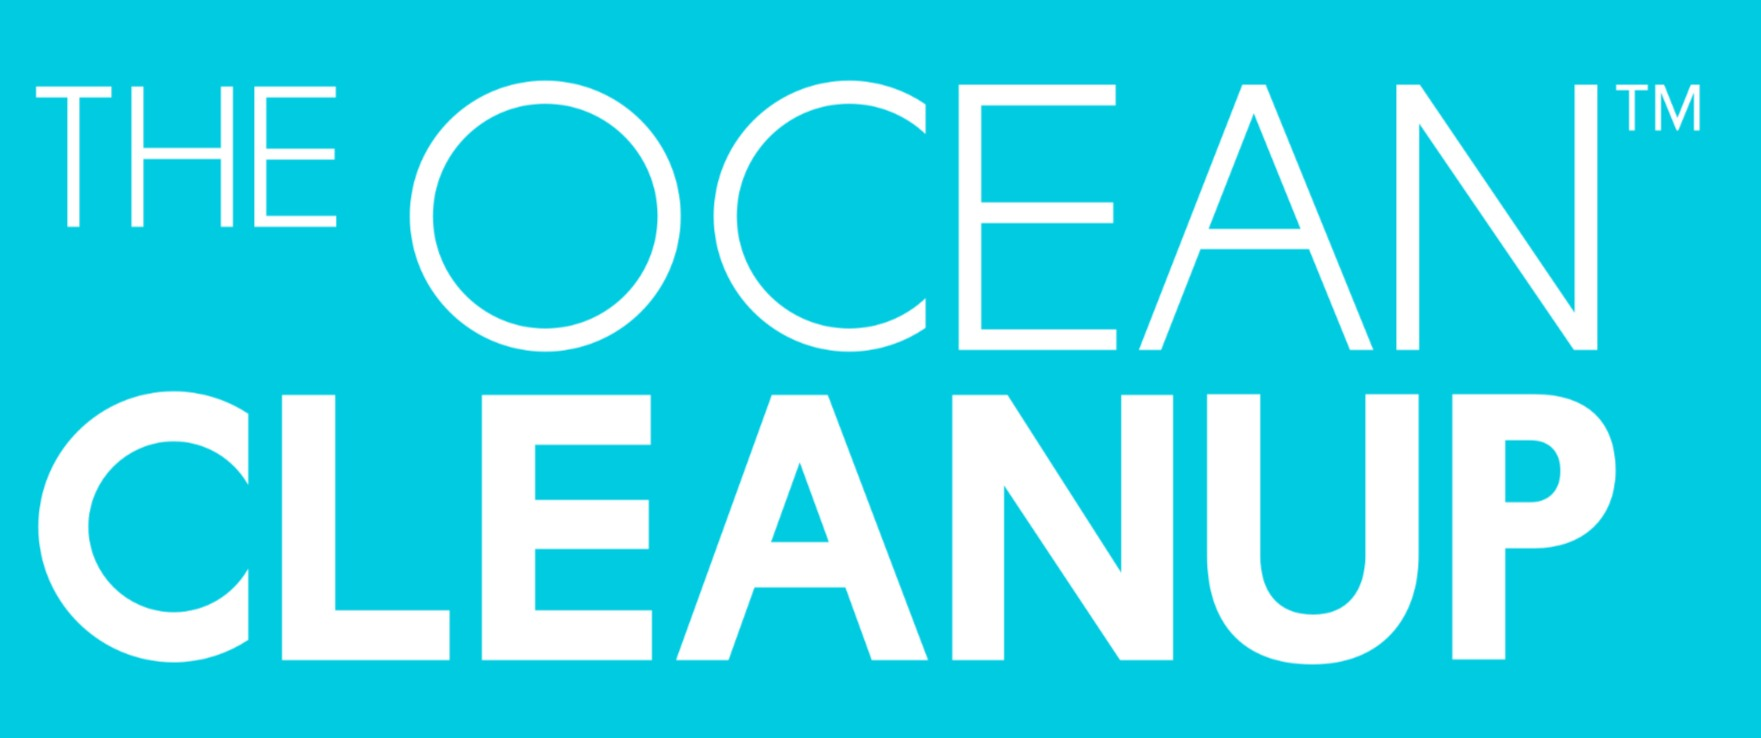 The%20ocean%20cleanup_edited